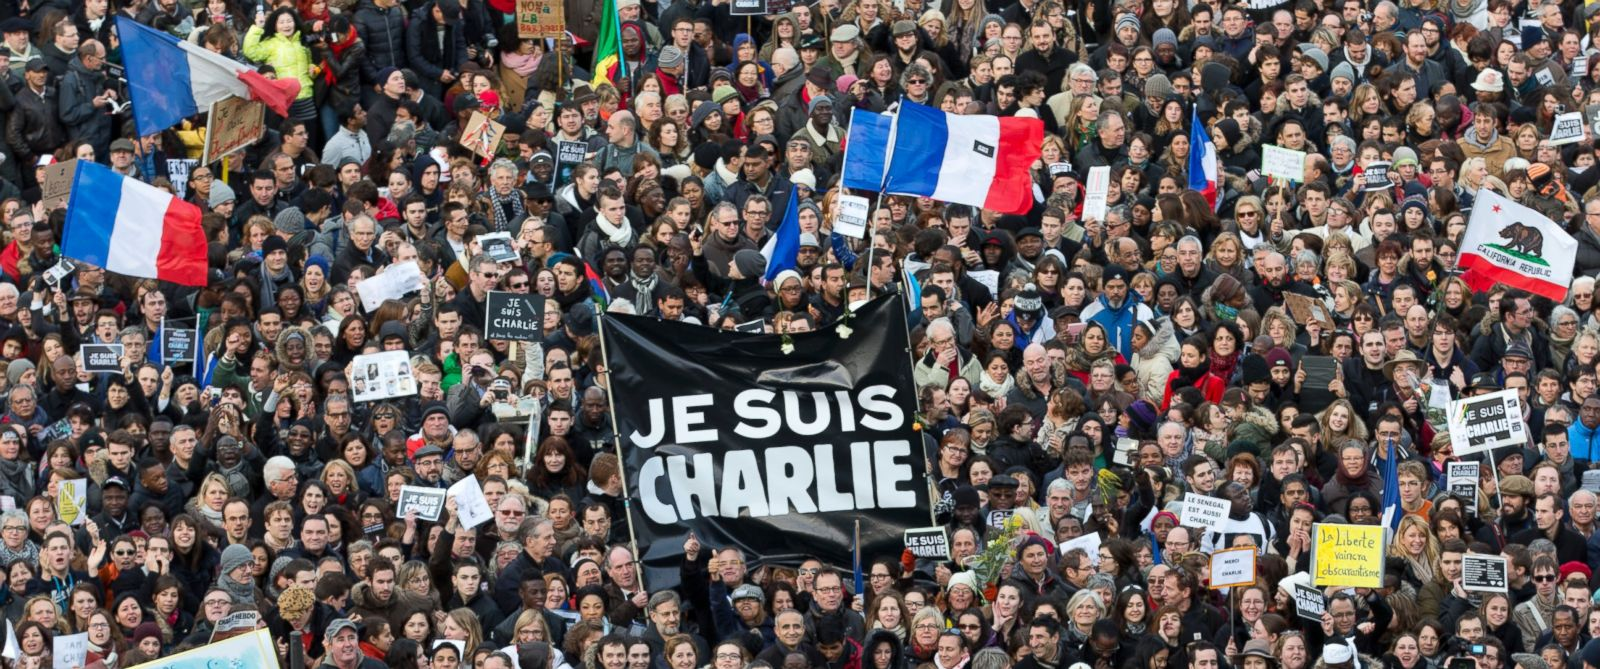 PHOTO: Thousands of people gather at Republique square in Paris, France, on Jan. 11, 2015 for a rally of defiance and sorrow to honor the 17 victims of three days of bloodshed that left France on alert for more violence.